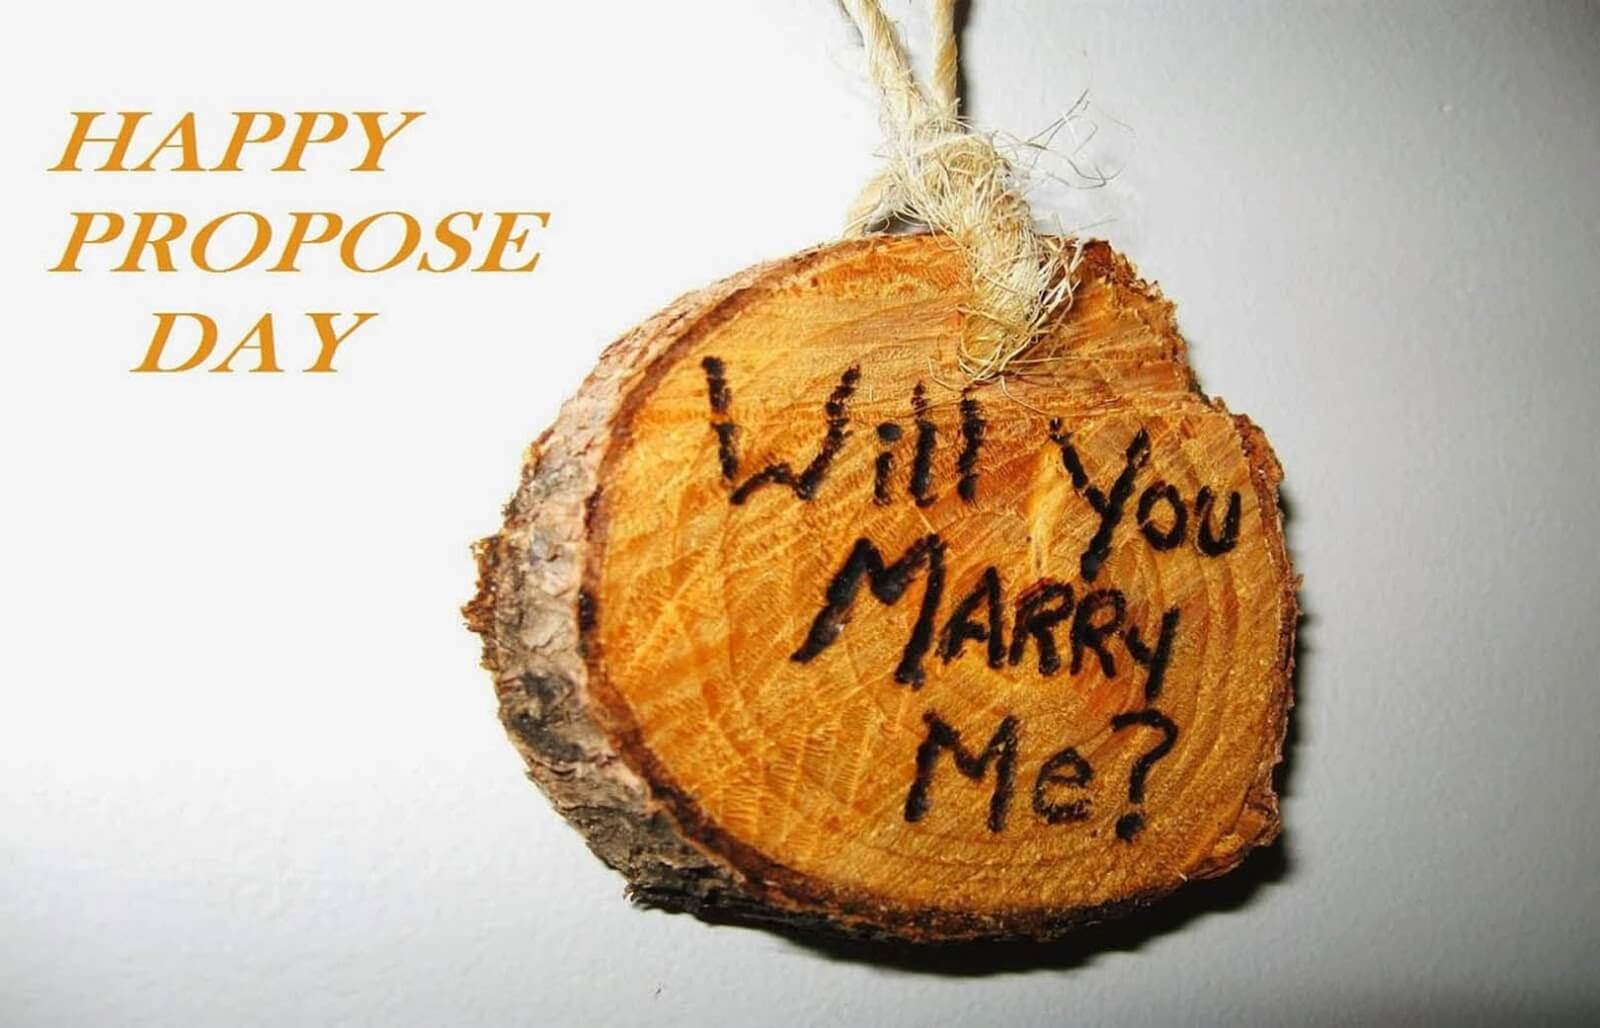 happy propose day will you marry me hd desktop wallpapers